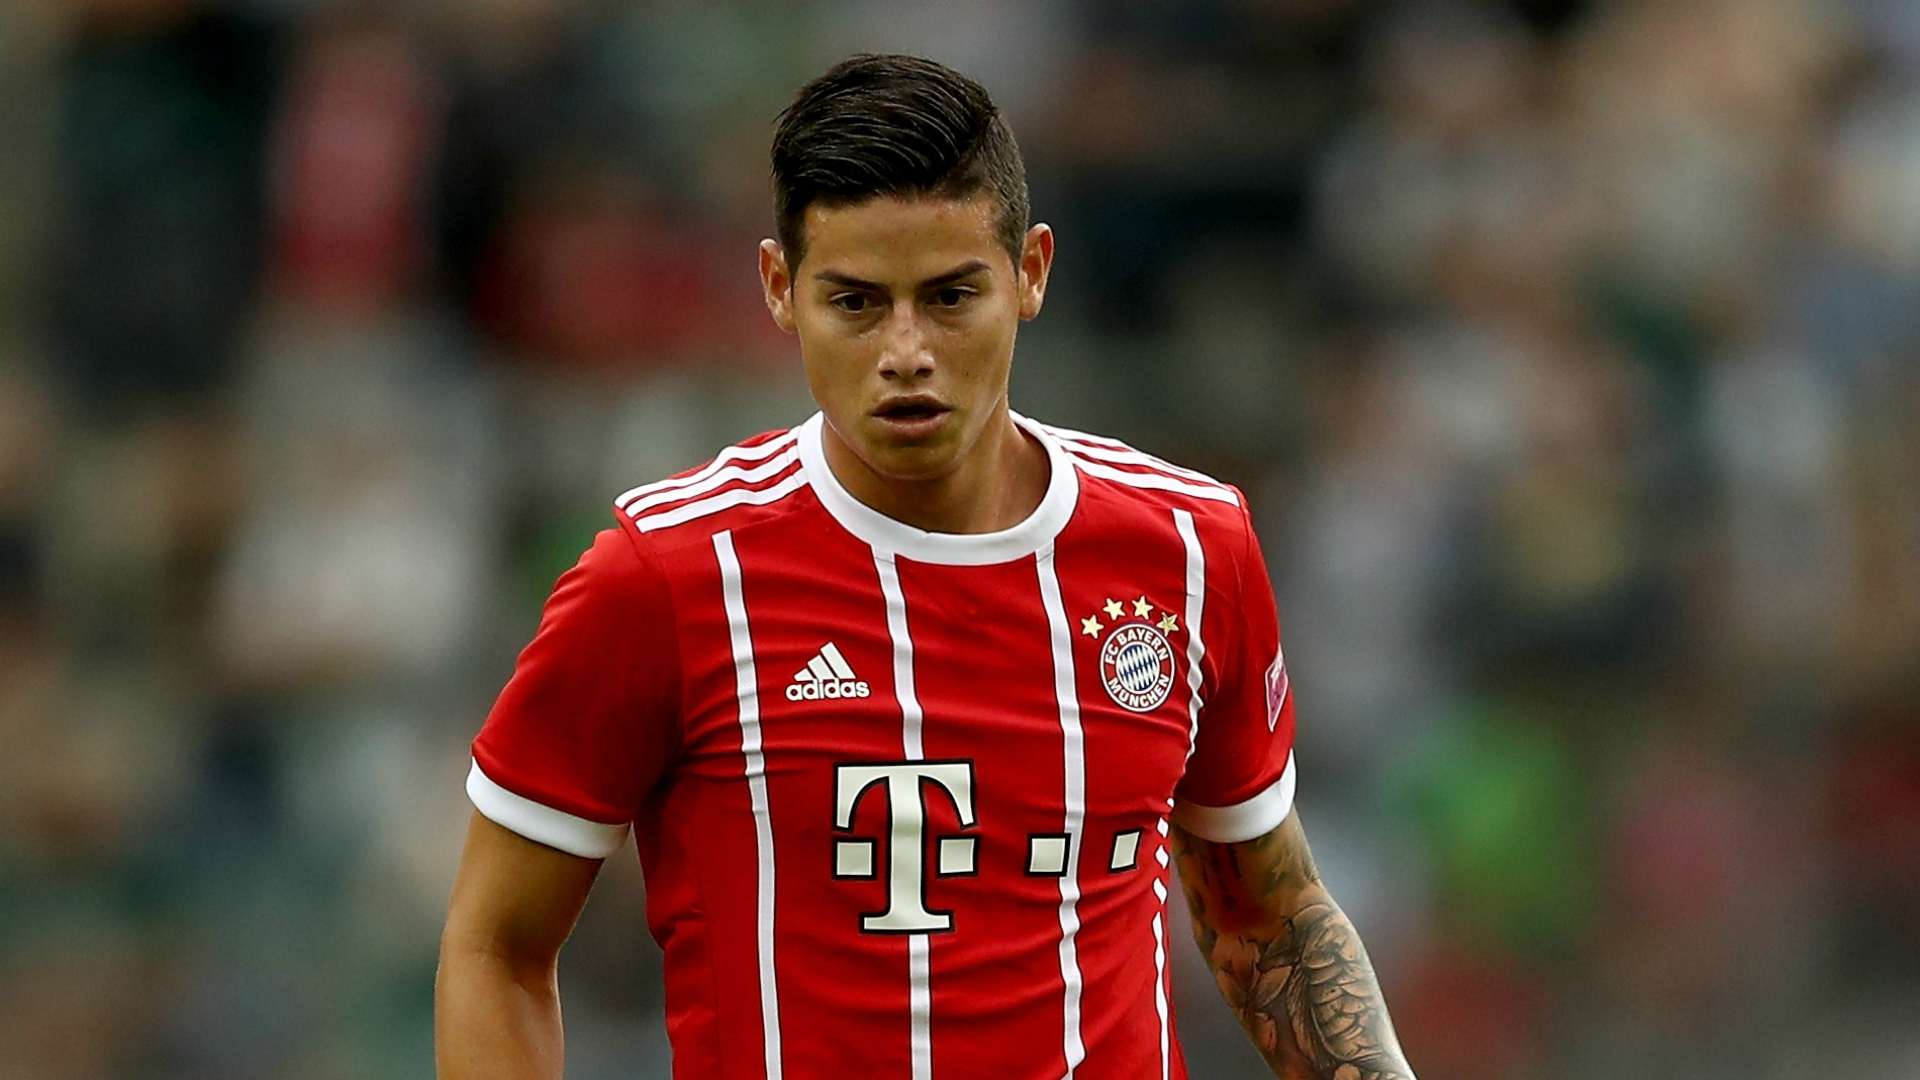 It's only that the German side has brought in two quality midfielders, James Rodriguez on loan from Real Madrid and Corentin Tolisso arriving from Lyon.